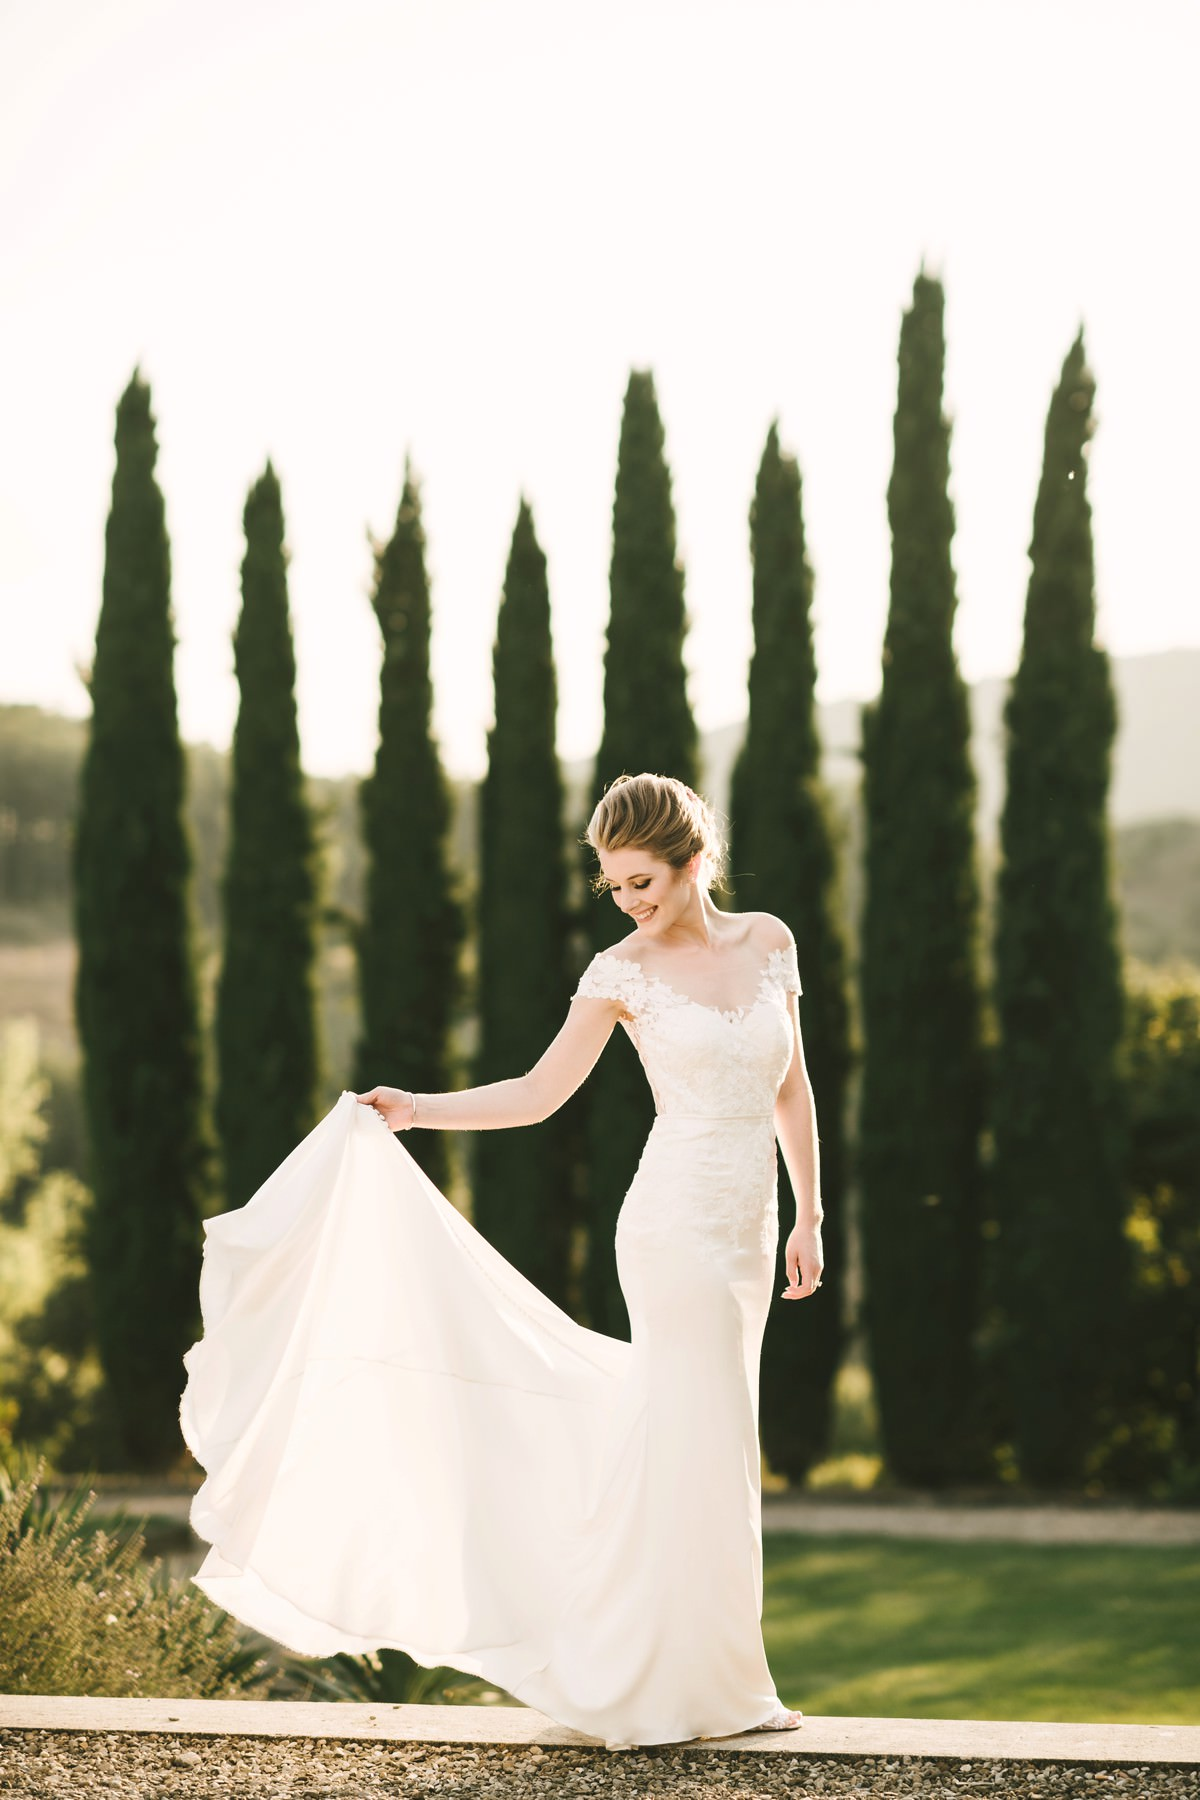 All the elegance and the beauty of bride Shauna in Kelly Faetanini gown and Betsey Johnson shoes